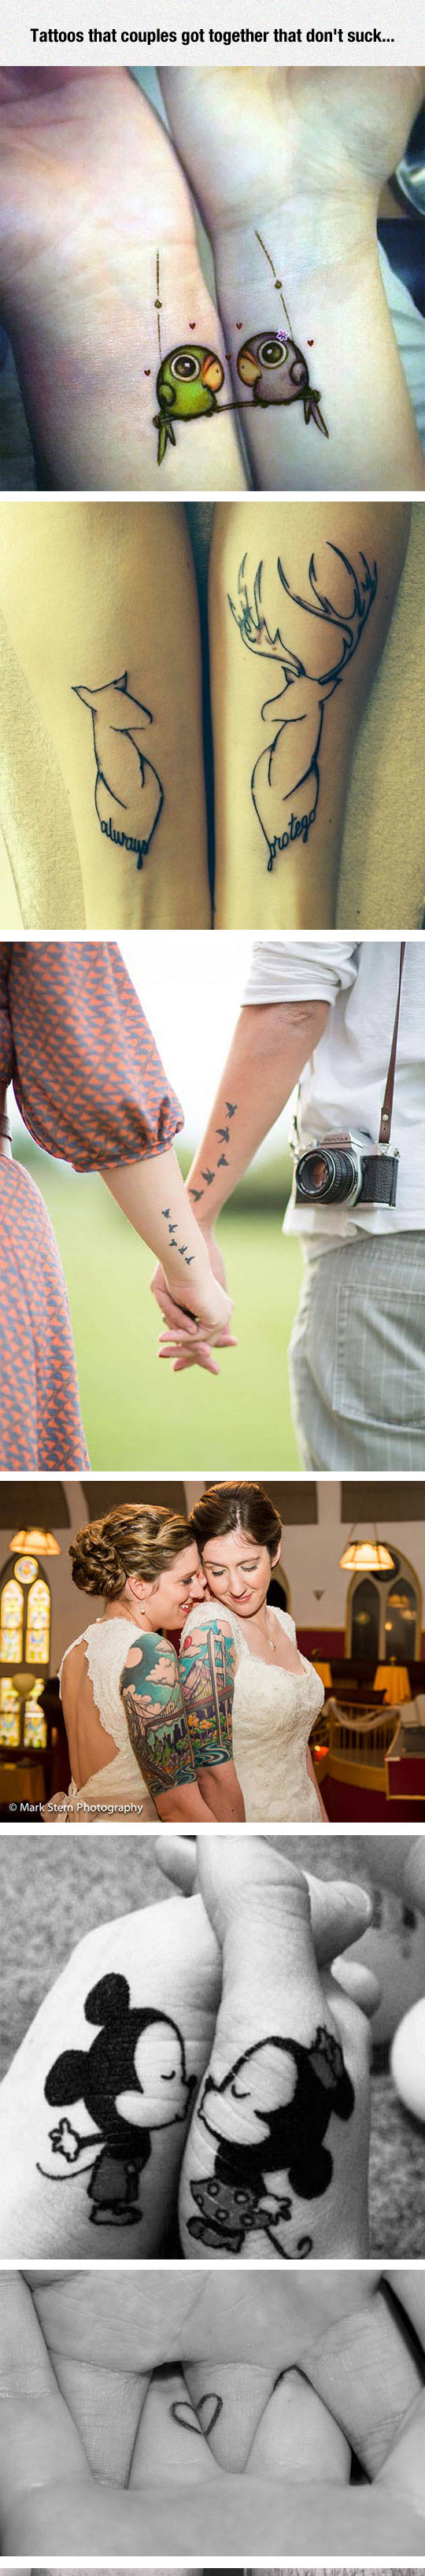 1-funny-tattoo-couple-together-birds